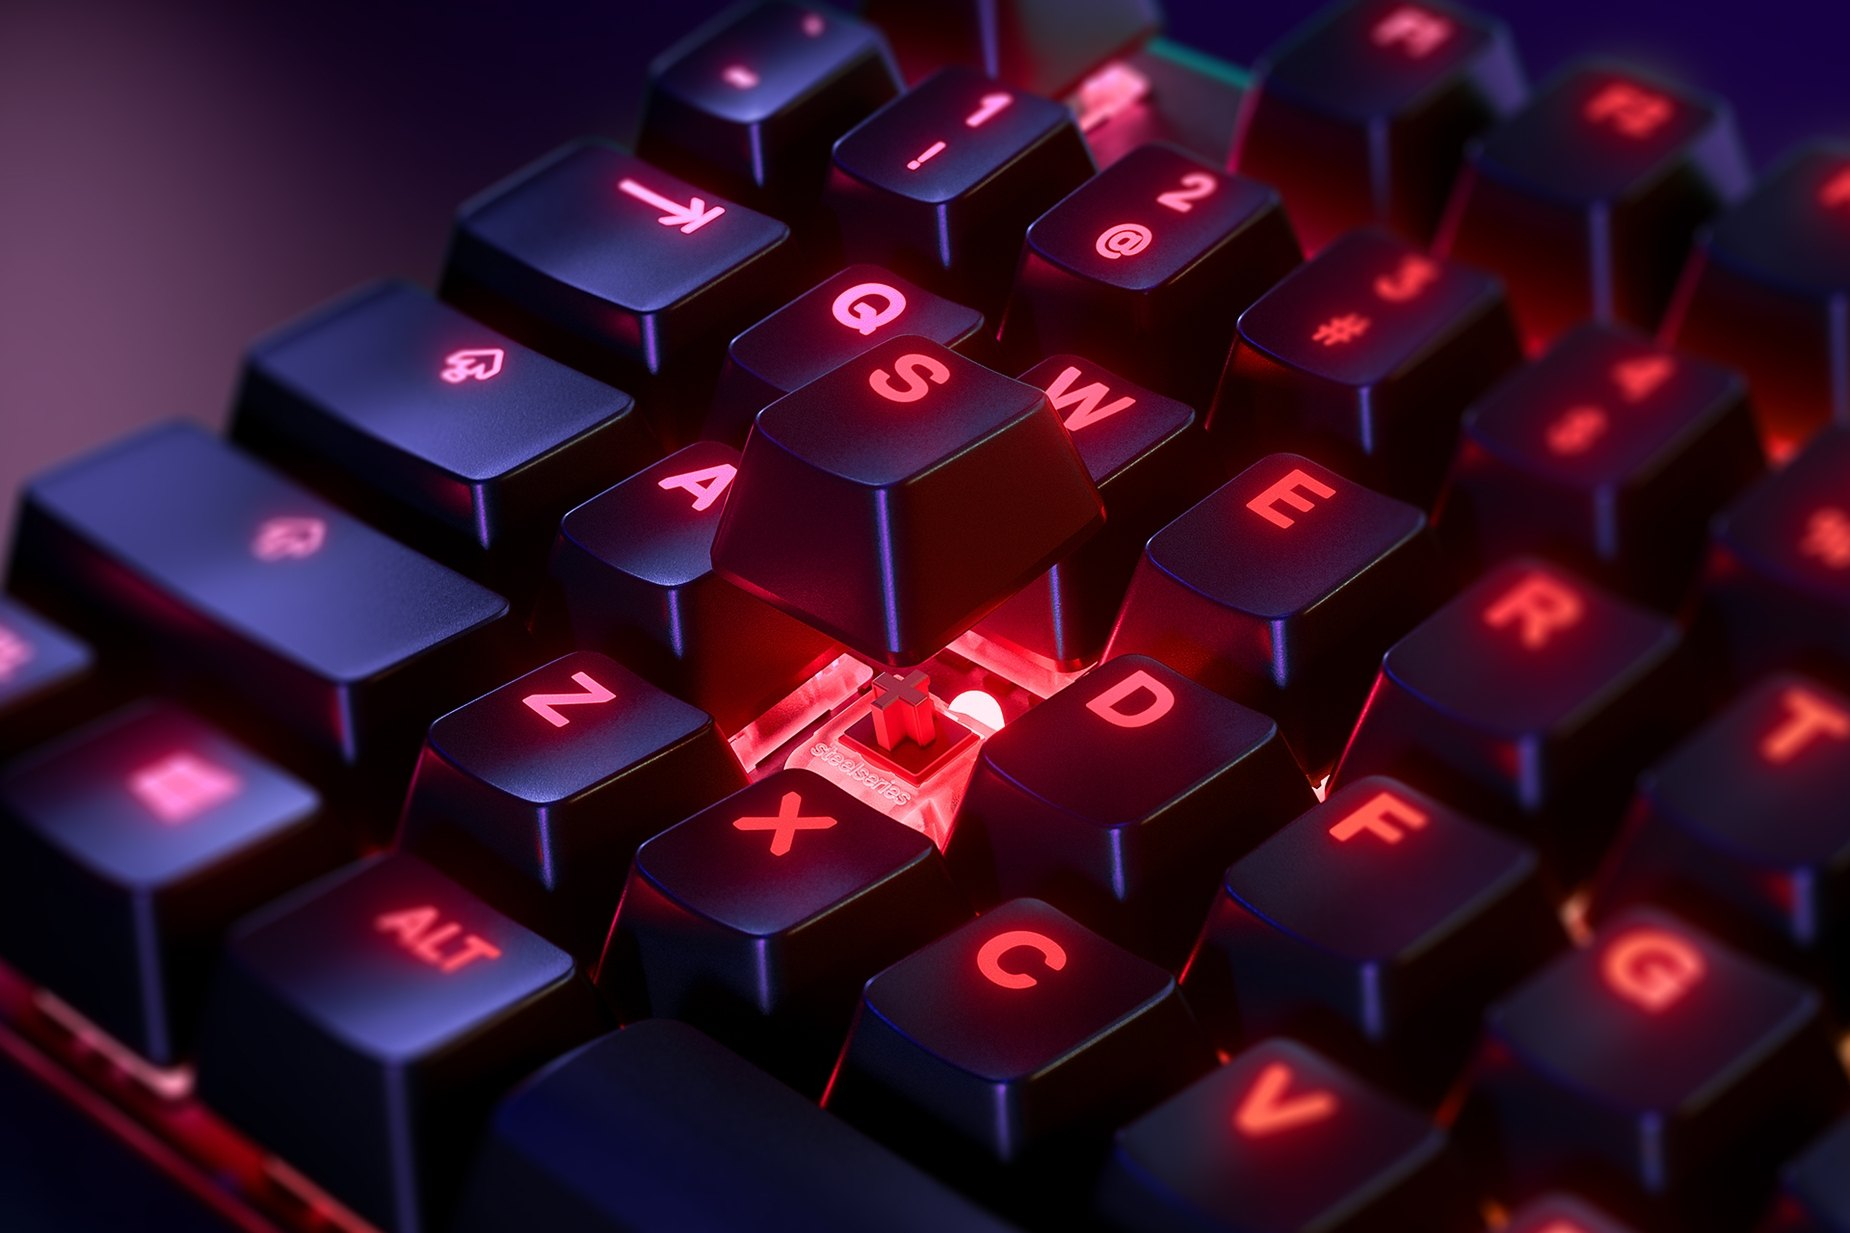 Zoomed in view of a single key on the German - Apex 7 (красные переключатели) gaming keyboard, the key is raised up to show the SteelSeries QX2 Mechanical RGB Switch underneath